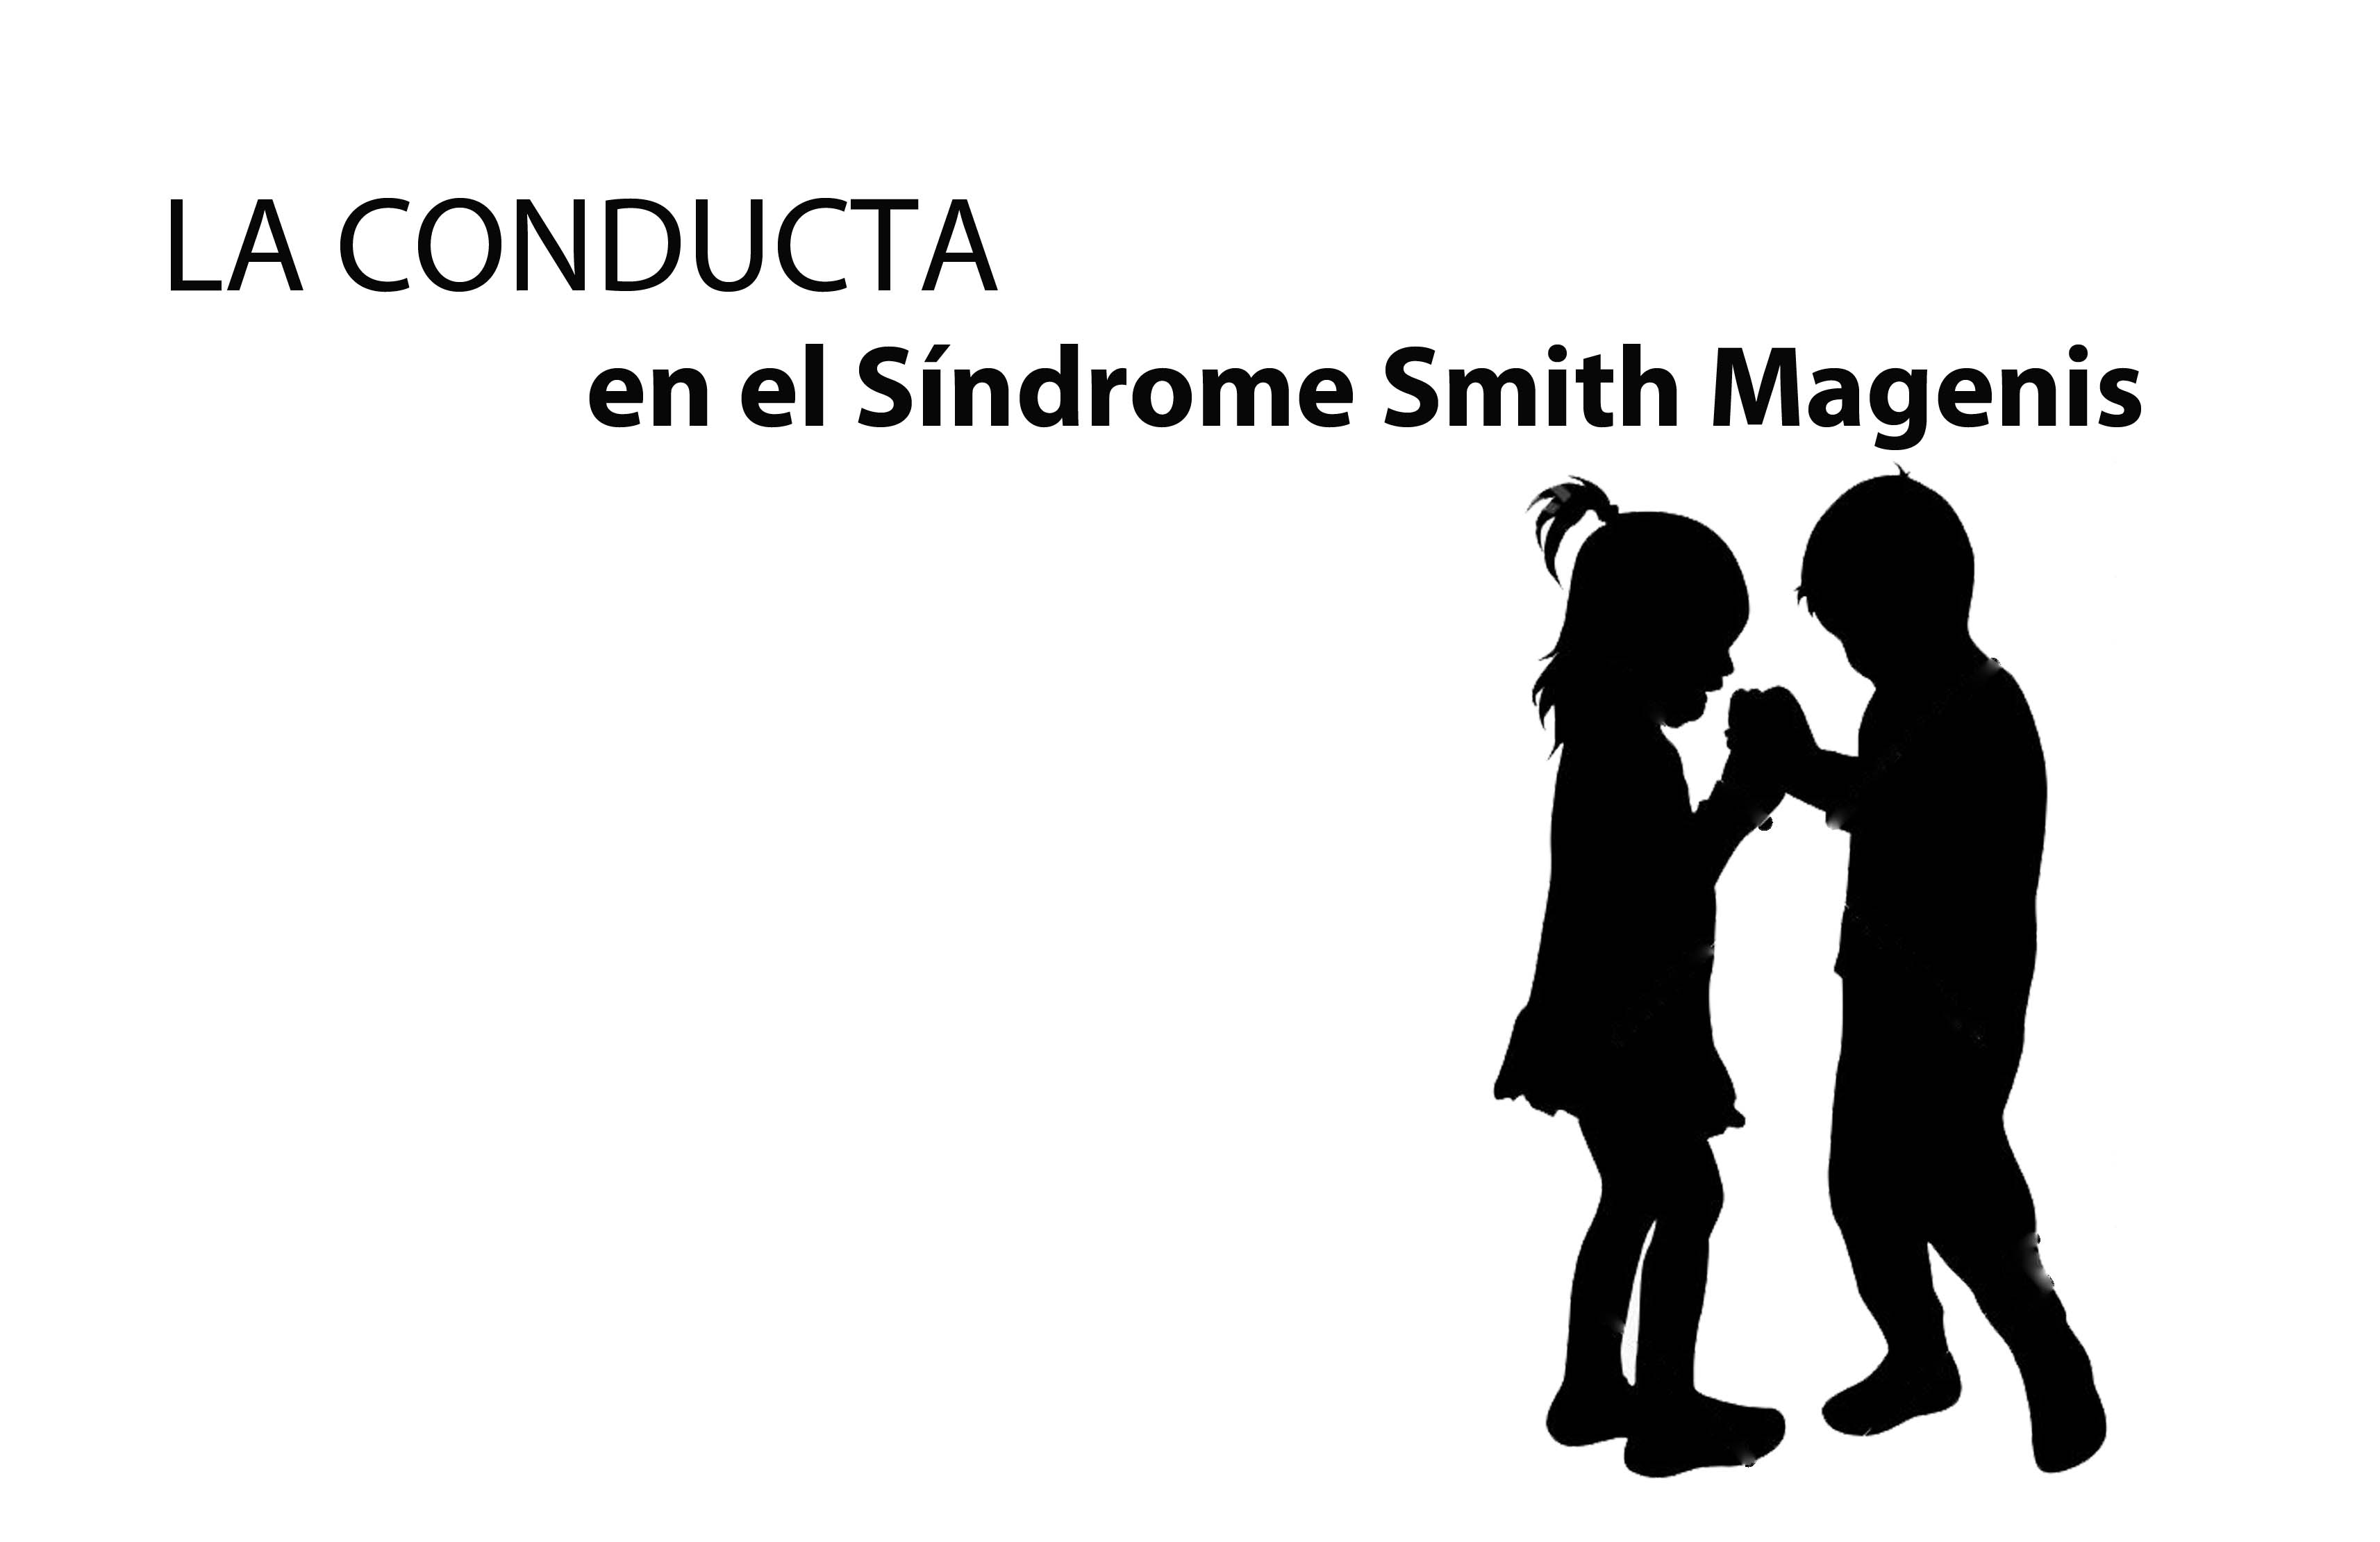 LA CONDUCTA EN EL SÍNDROME DE SMITH MAGENIS